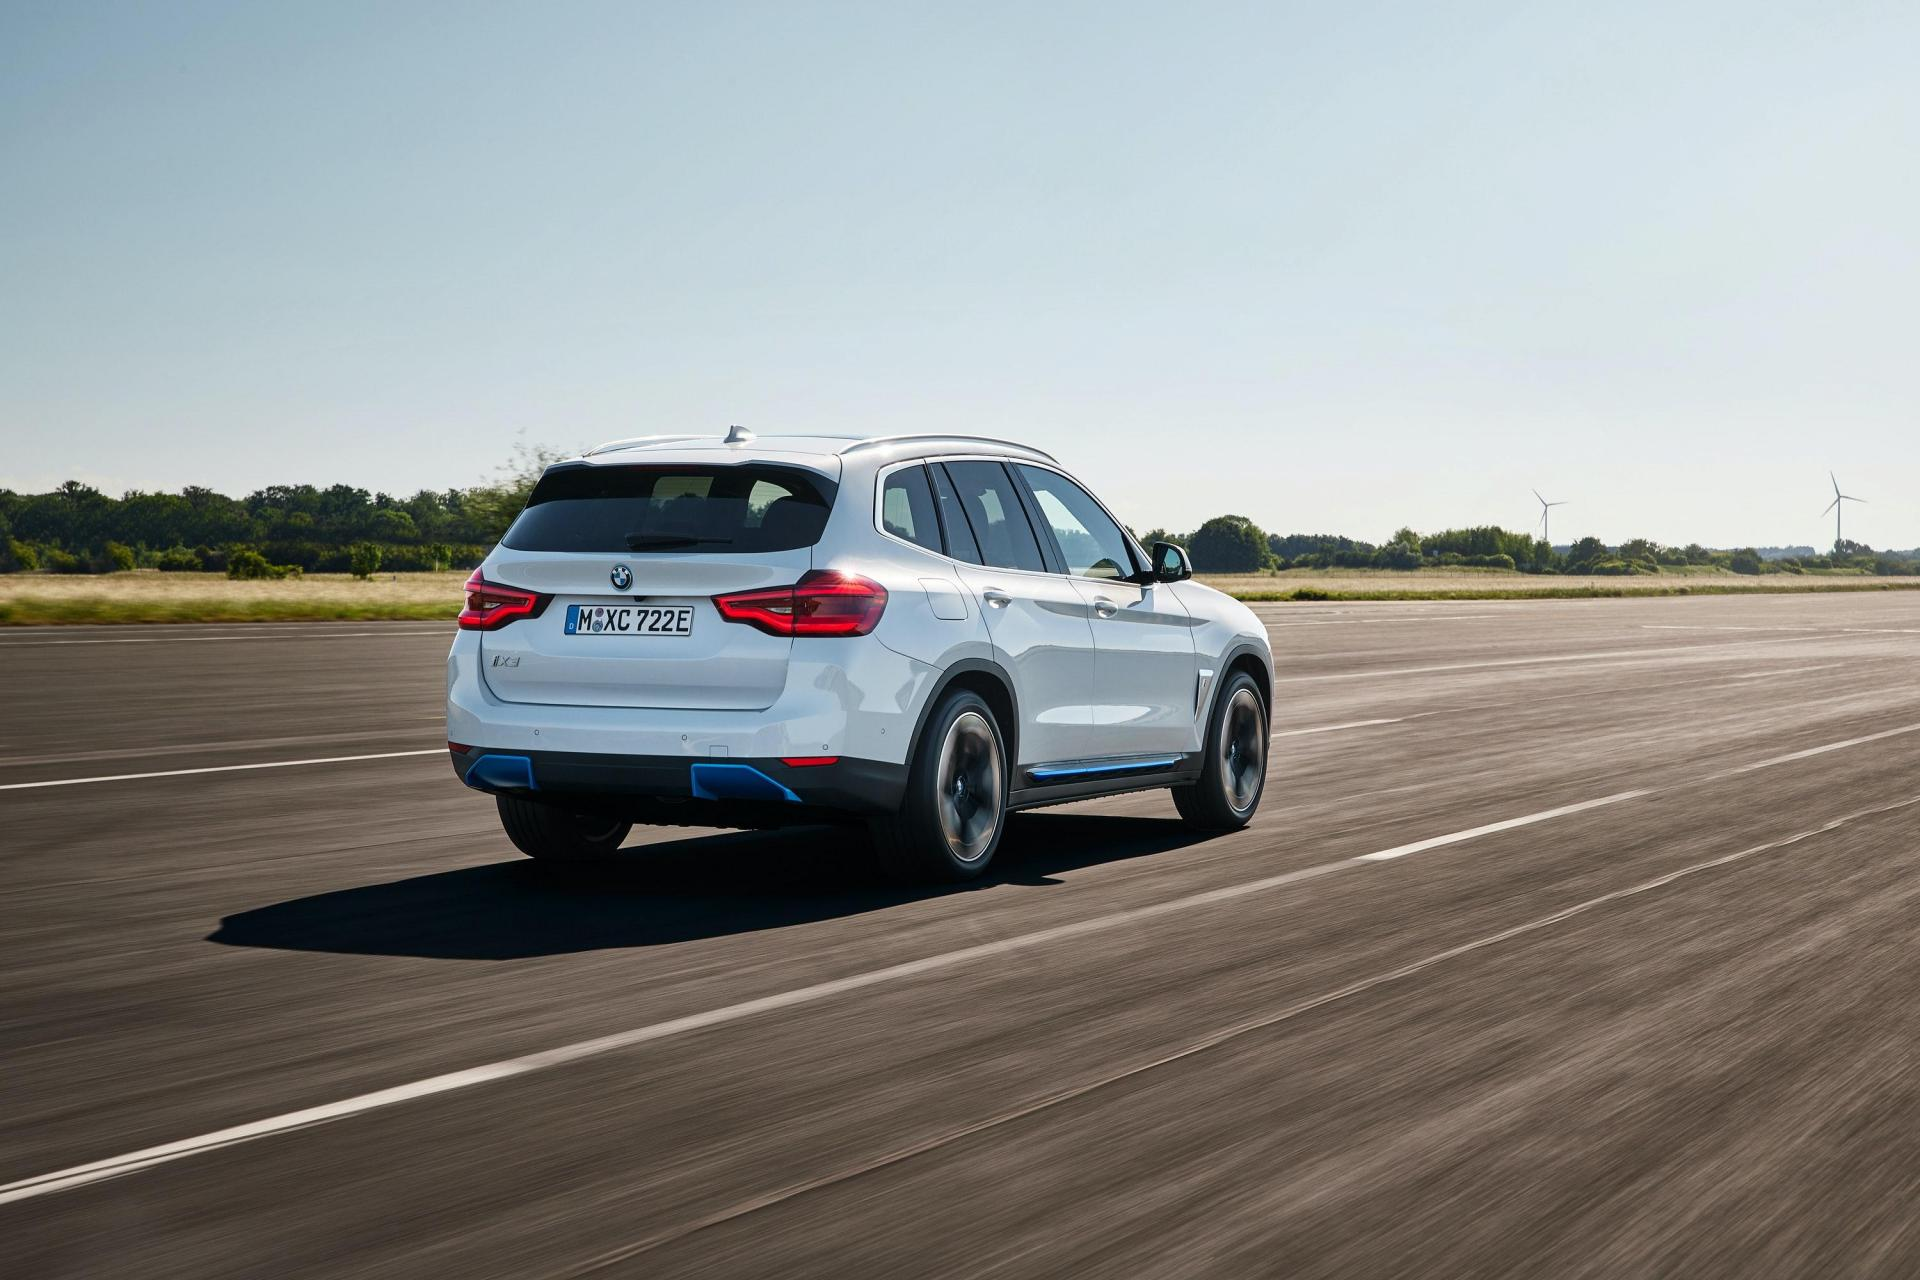 The iX3 mirrors many styling traits found on the regular X3.